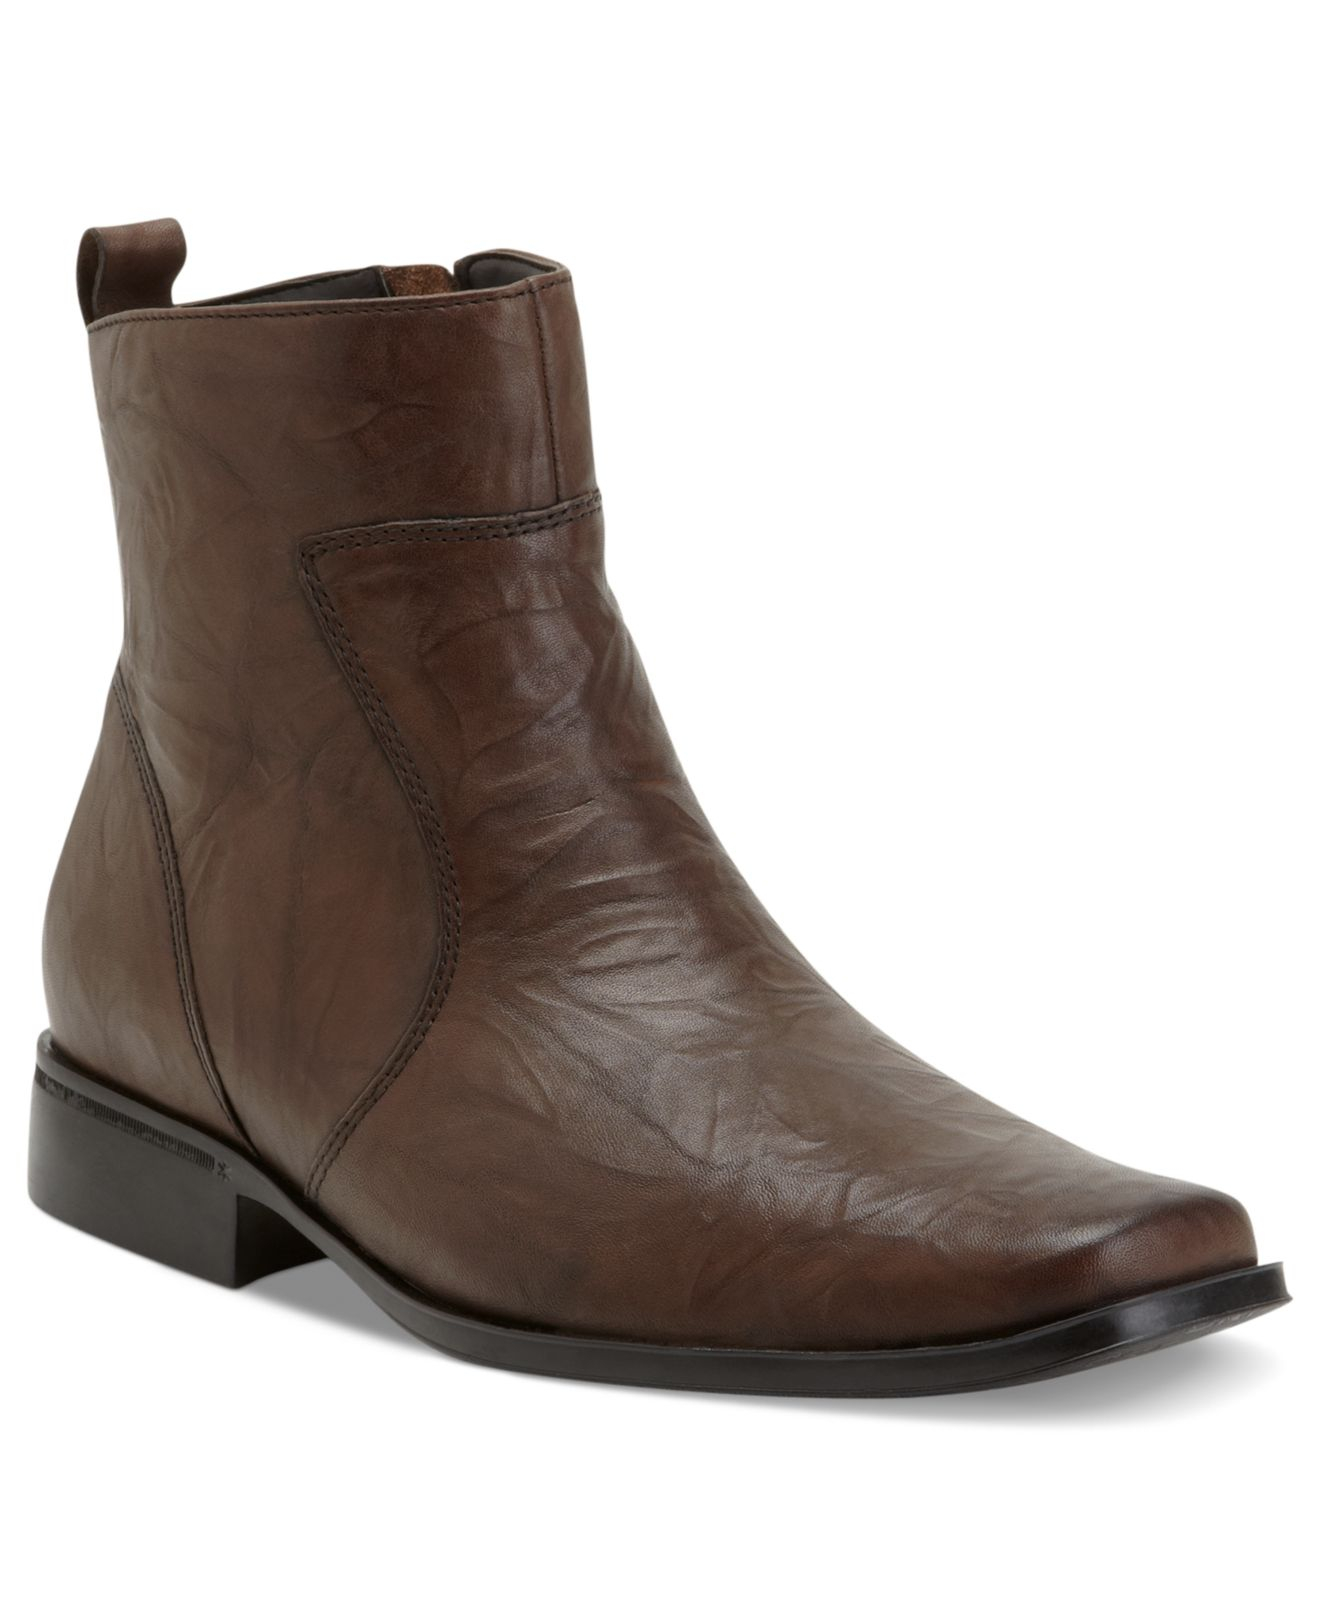 rockport s toloni boots in brown for lyst